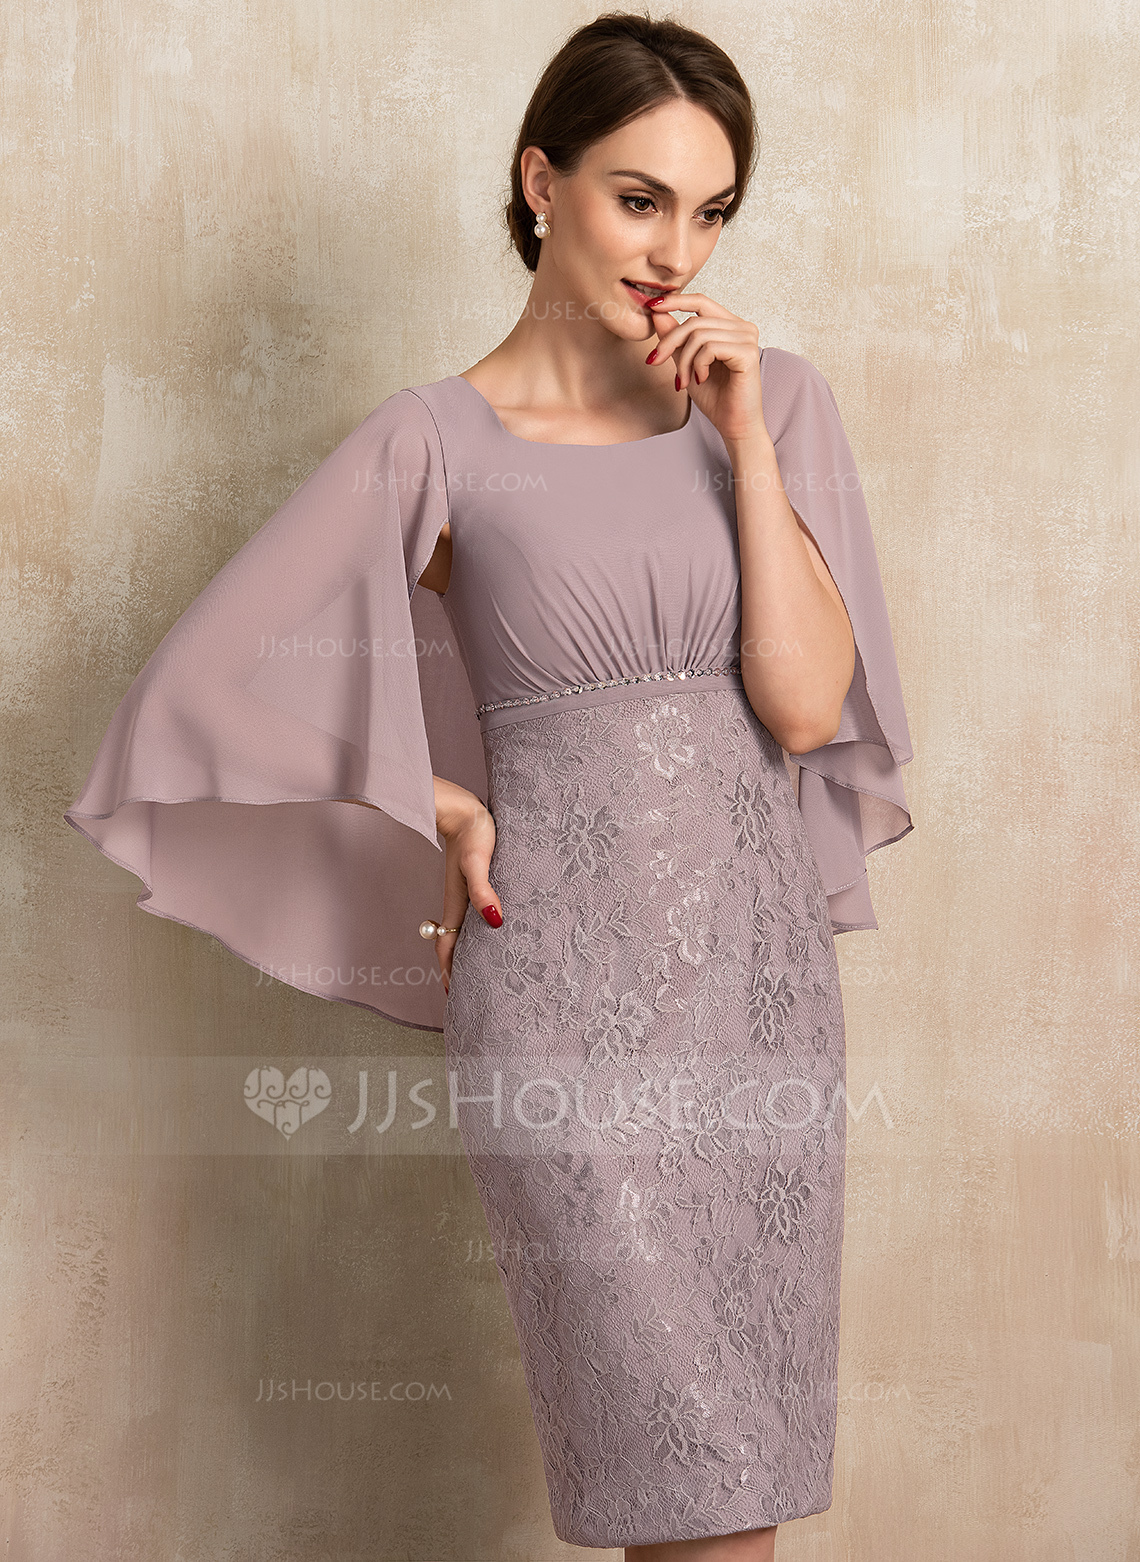 Sheath/Column Square Neckline Knee-Length Chiffon Lace Mother of the Bride Dress With Ruffle Beading Sequins